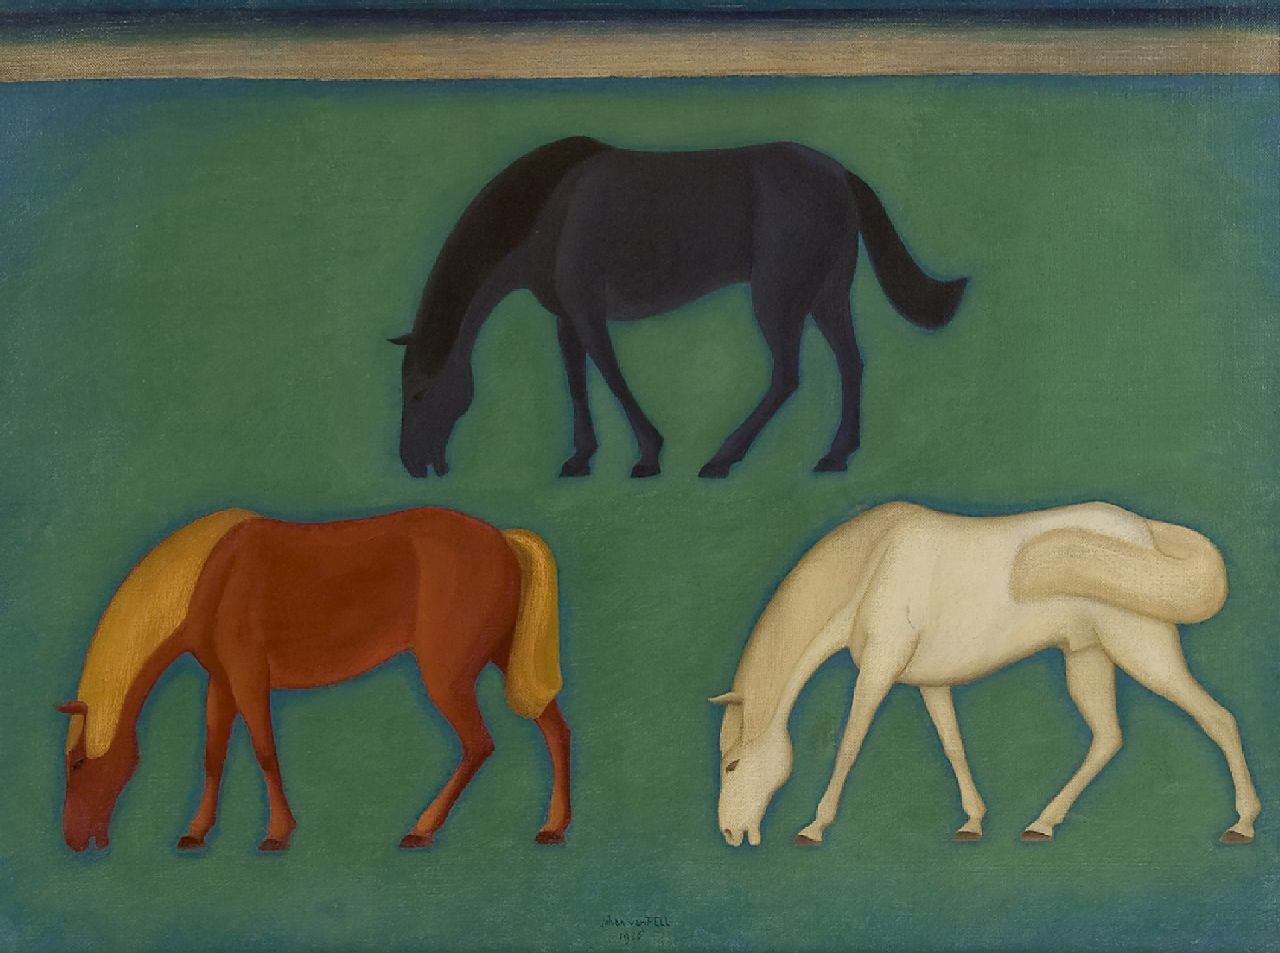 Johan van Hell | Three grazing horses, oil on canvas, 60.5 x 80.5 cm, signed l.c. and dated 1926